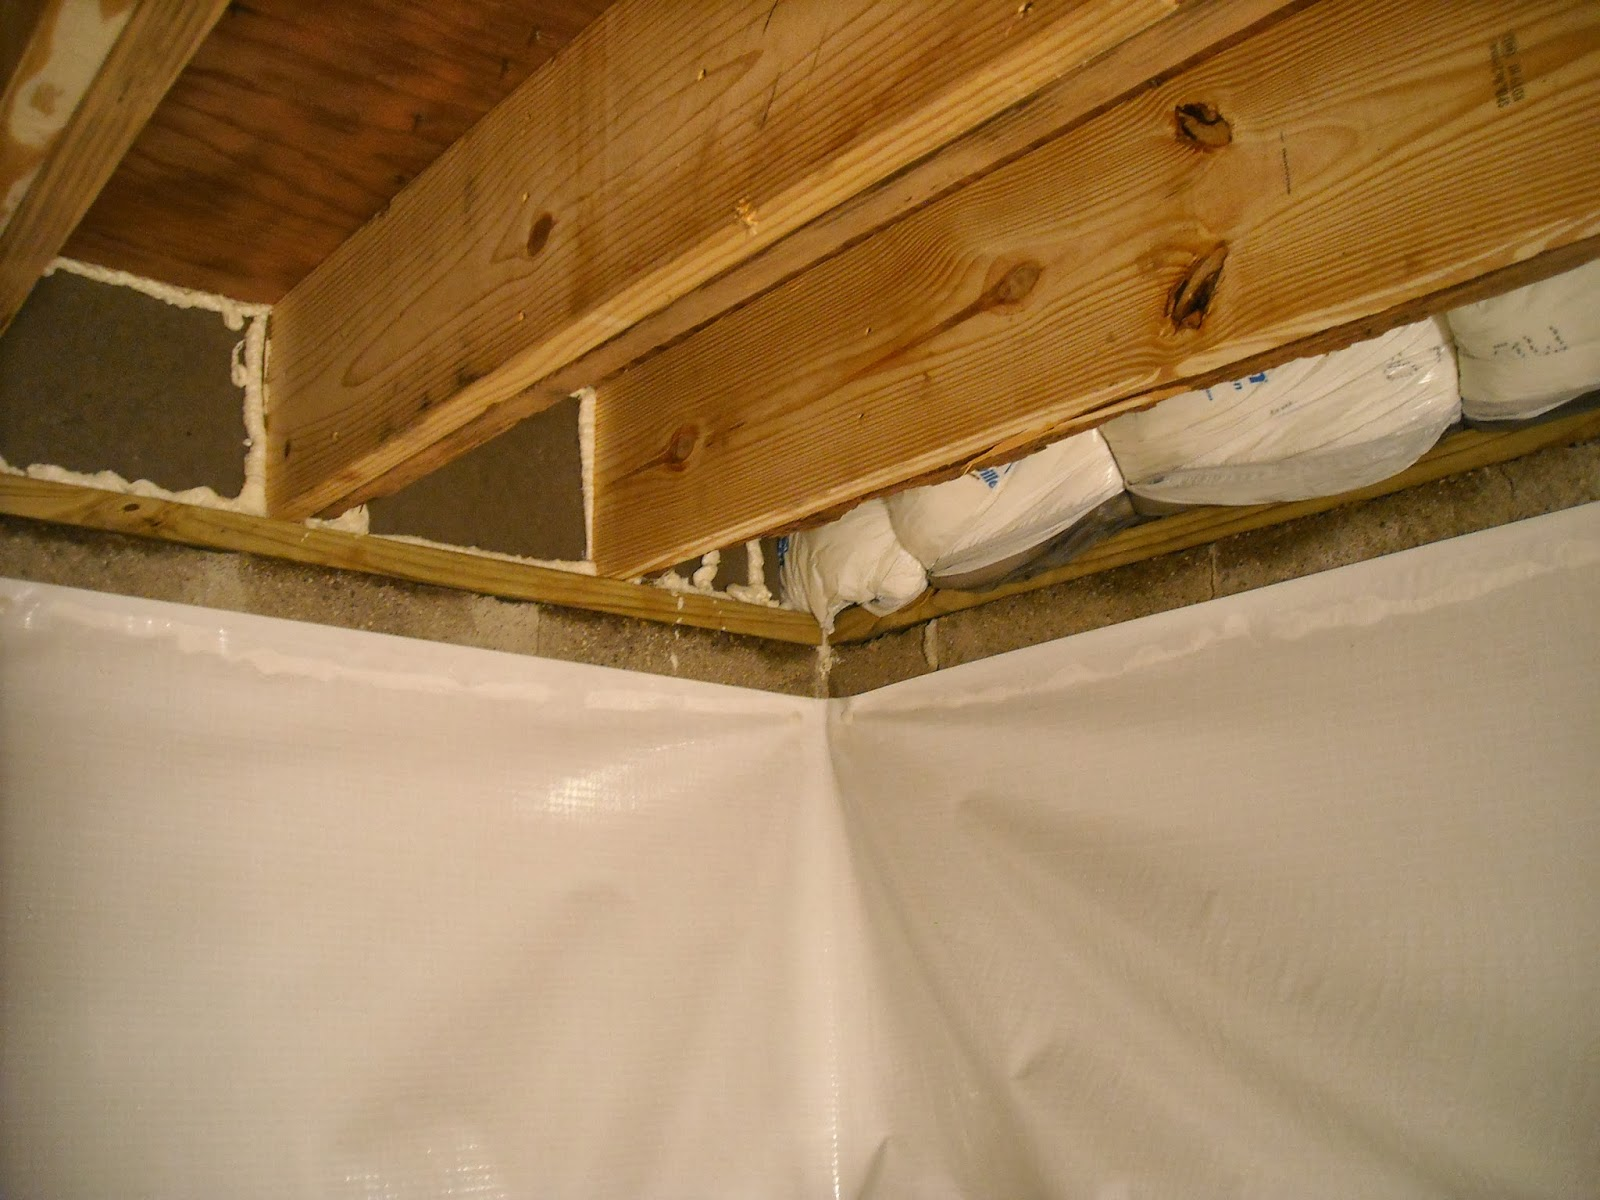 Indiana crawlspace repair and waterproofing november 2013 for Wood crawl space foundation